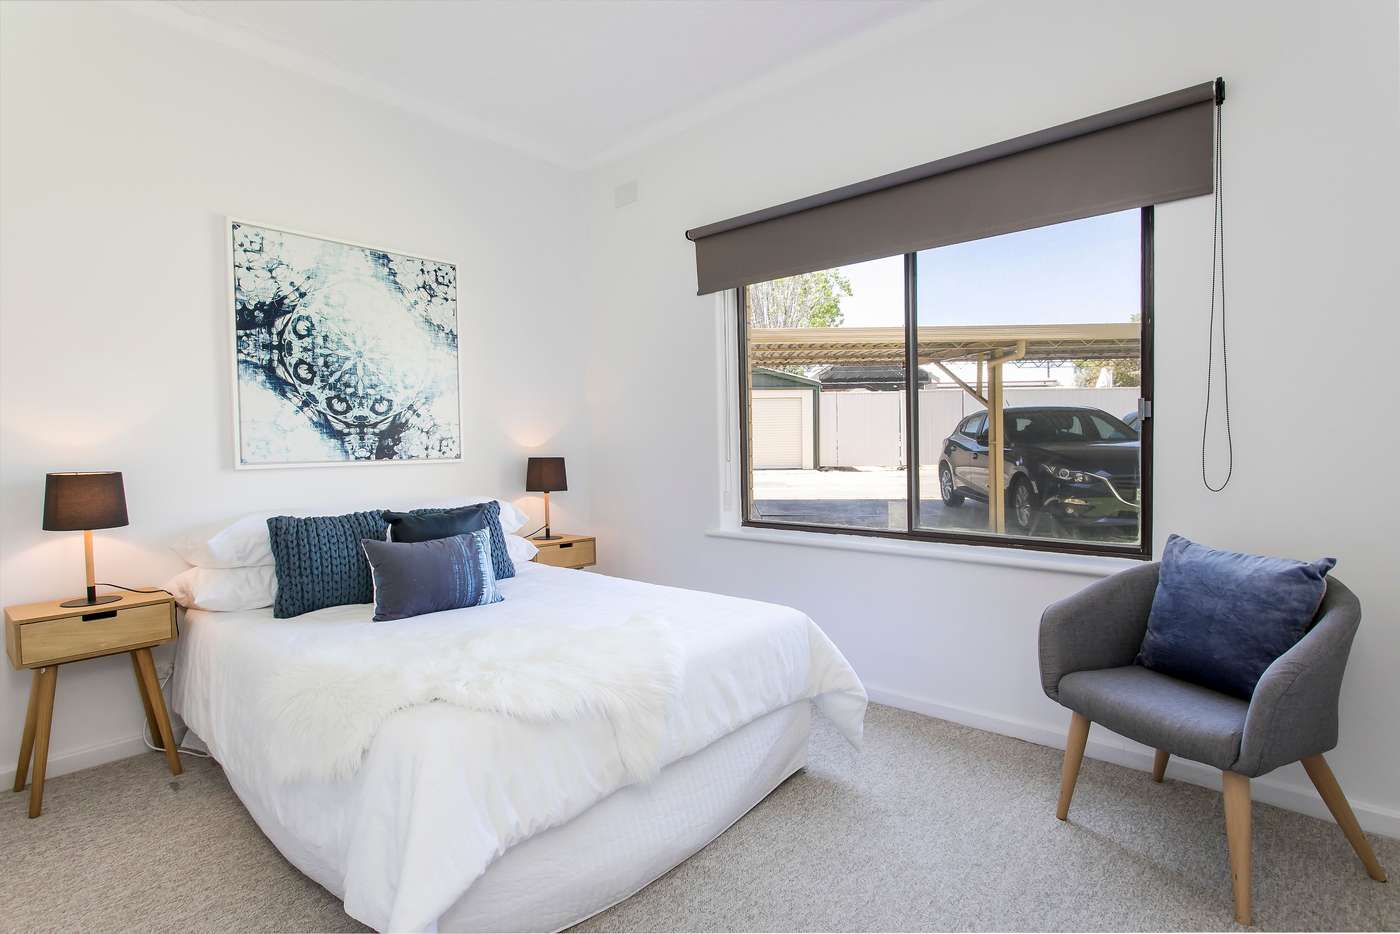 Sixth view of Homely unit listing, 4/6 West Street, Evandale SA 5069